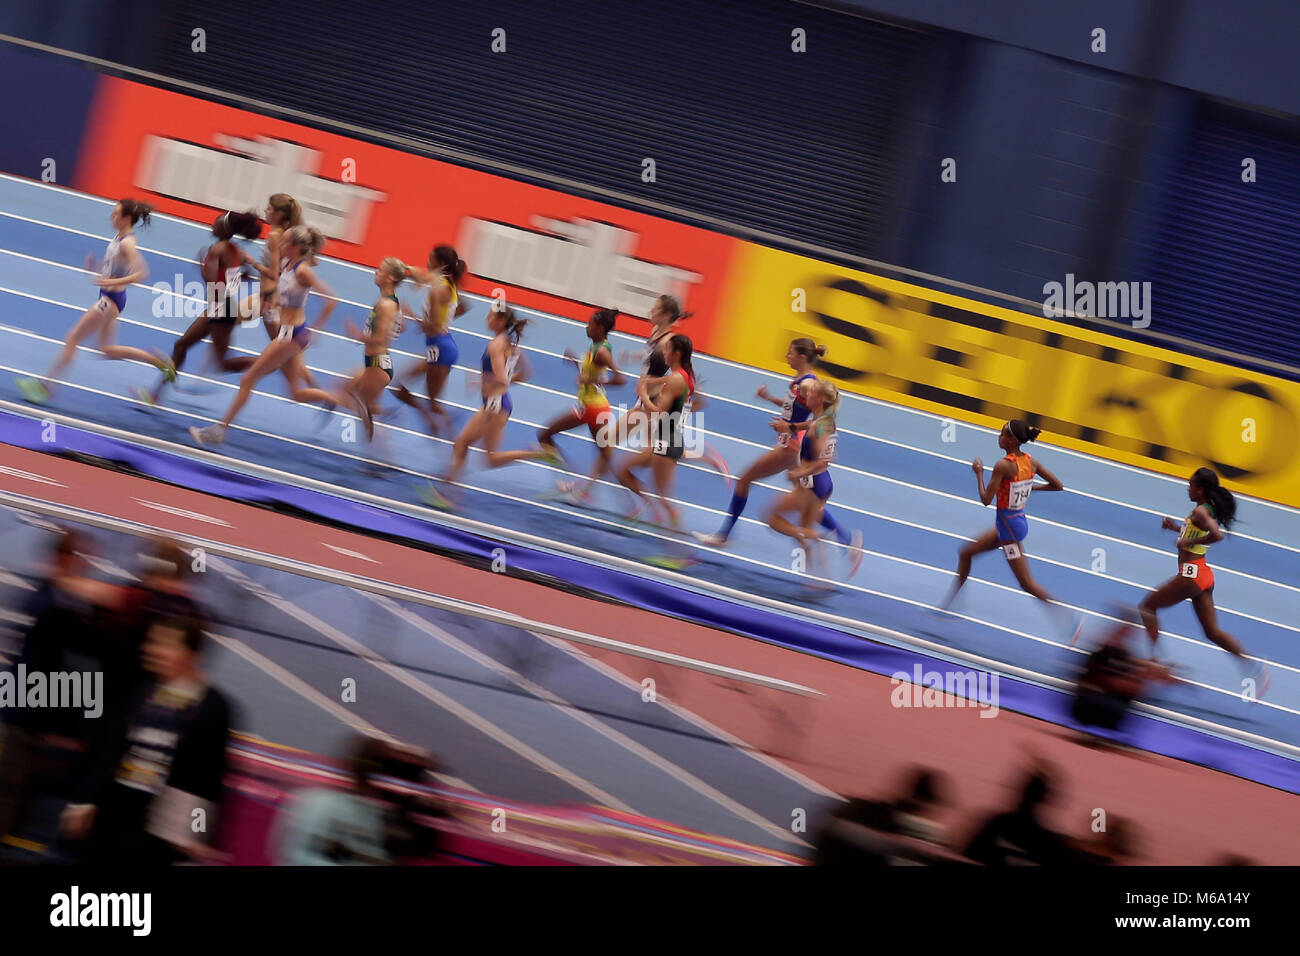 London, UK. 1st Mar, 2018. Runners compete during the women's 3000m final during the IAAF World Indoor Championships - Stock Image